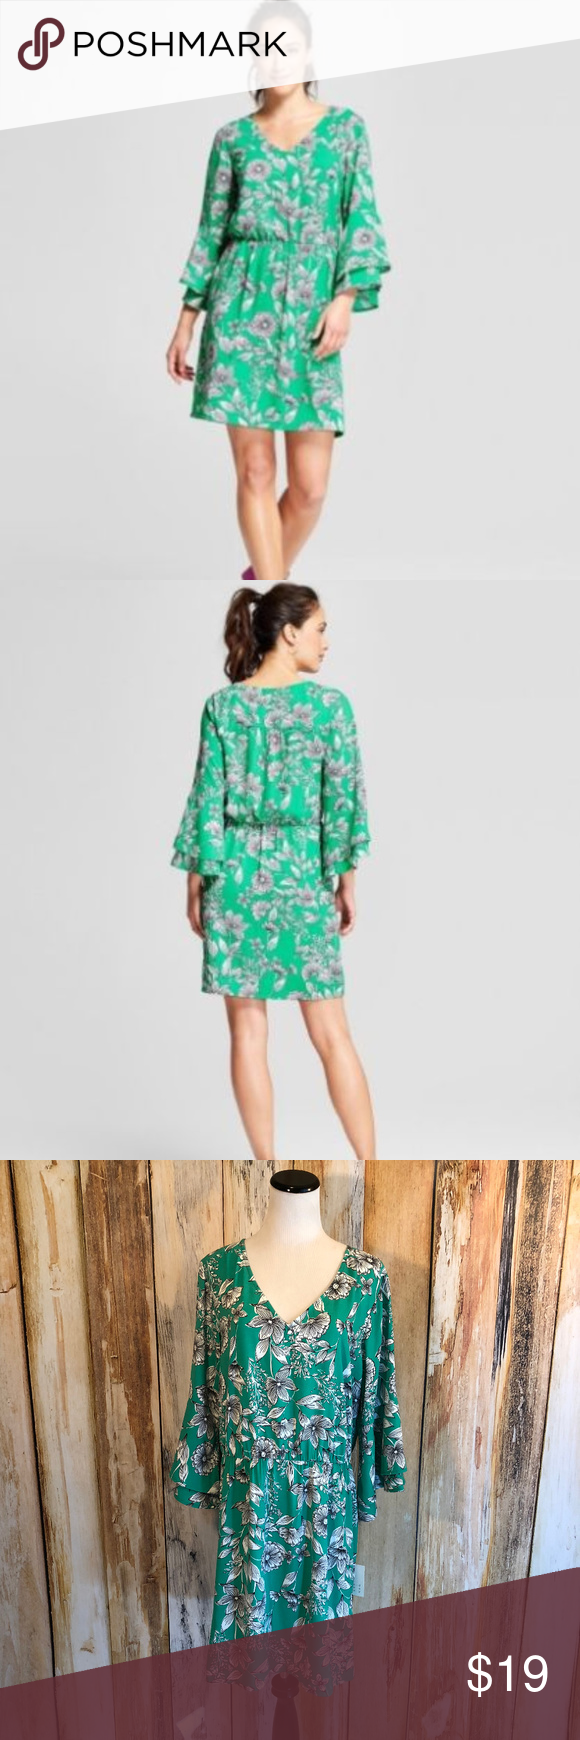 Target A New Day Dress Green White Floral Xl Nwt Green Dress Day Dresses Clothes Design [ 1740 x 580 Pixel ]